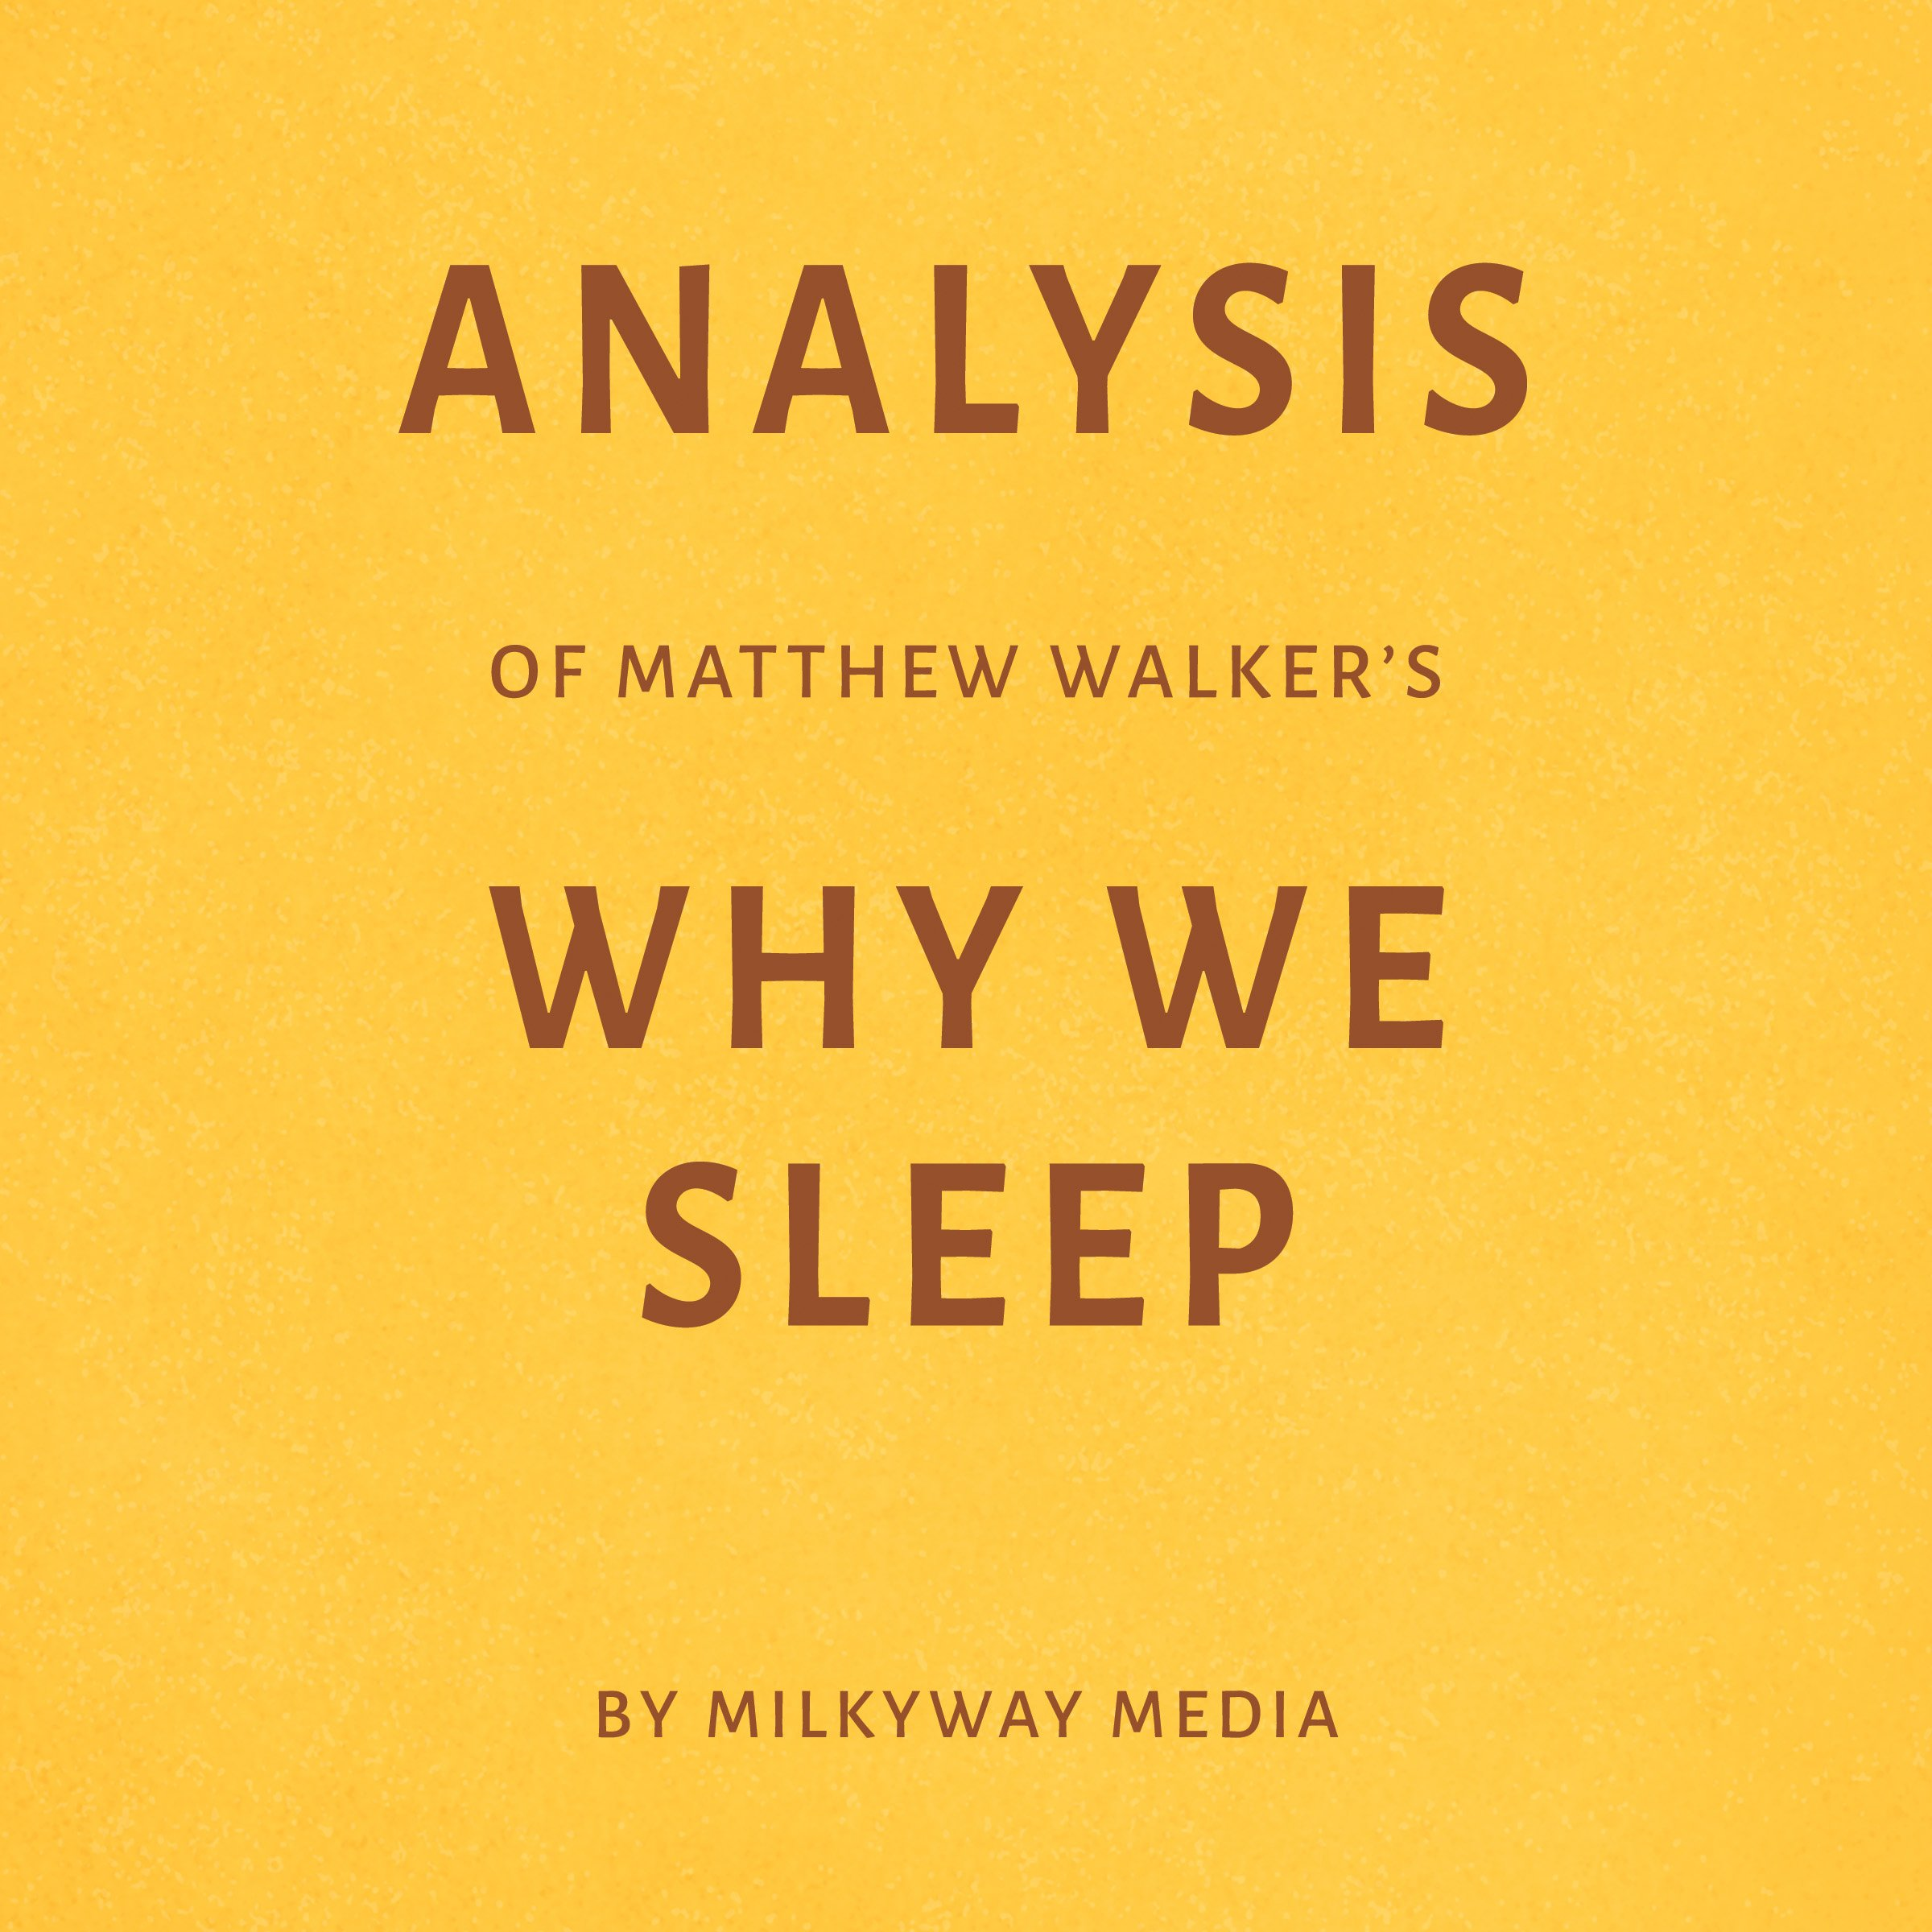 Analysis Of Matthew Walker's Why We Sleep